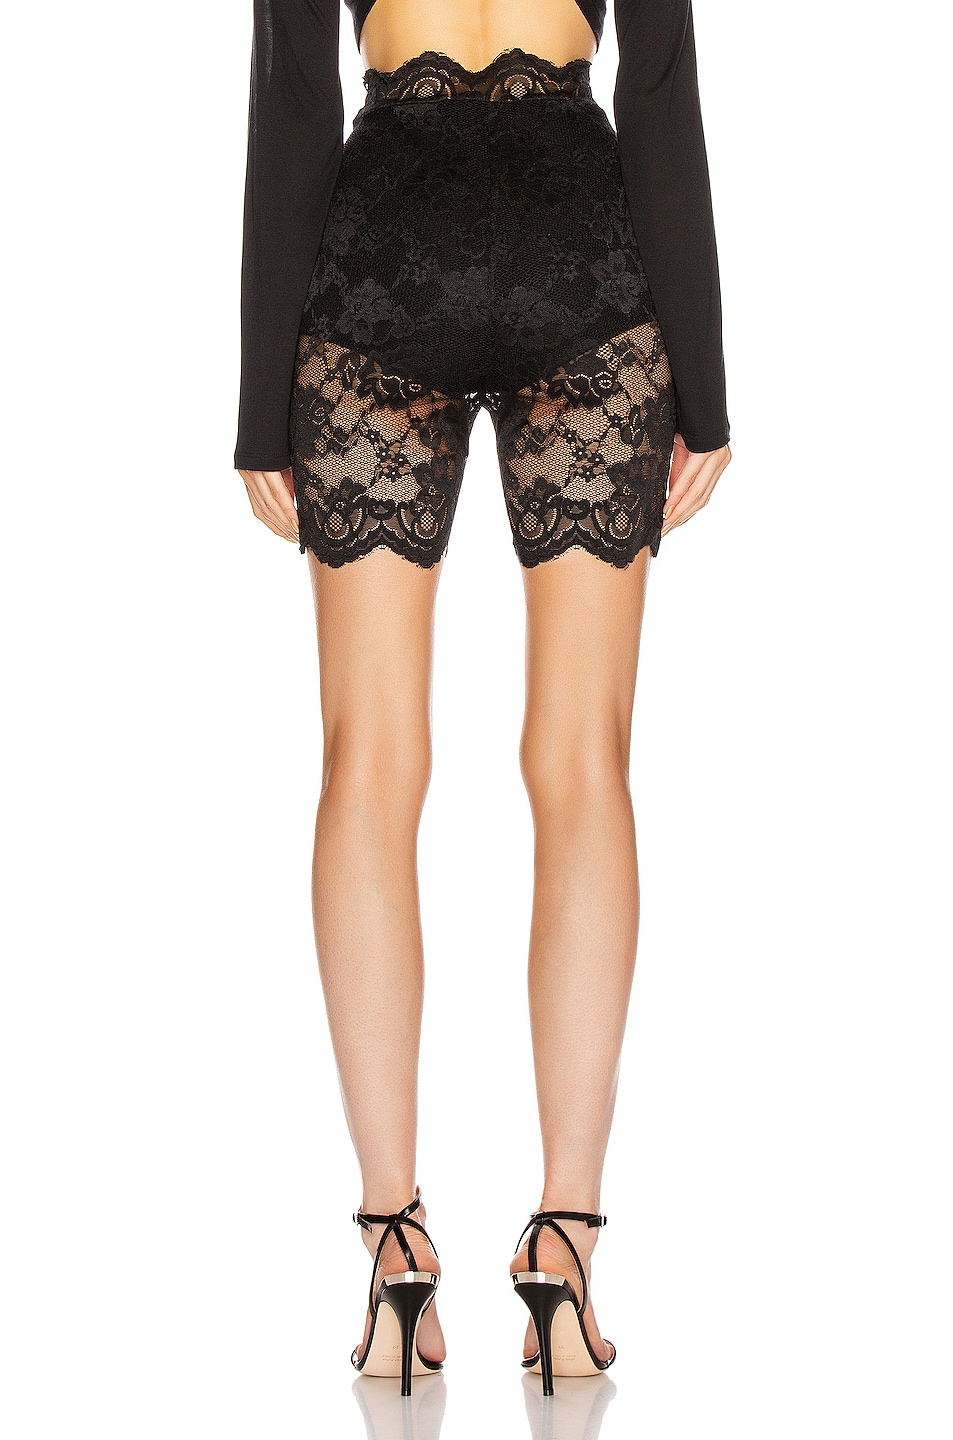 Image 3 of Atoir Only One Shorts in Black Lace